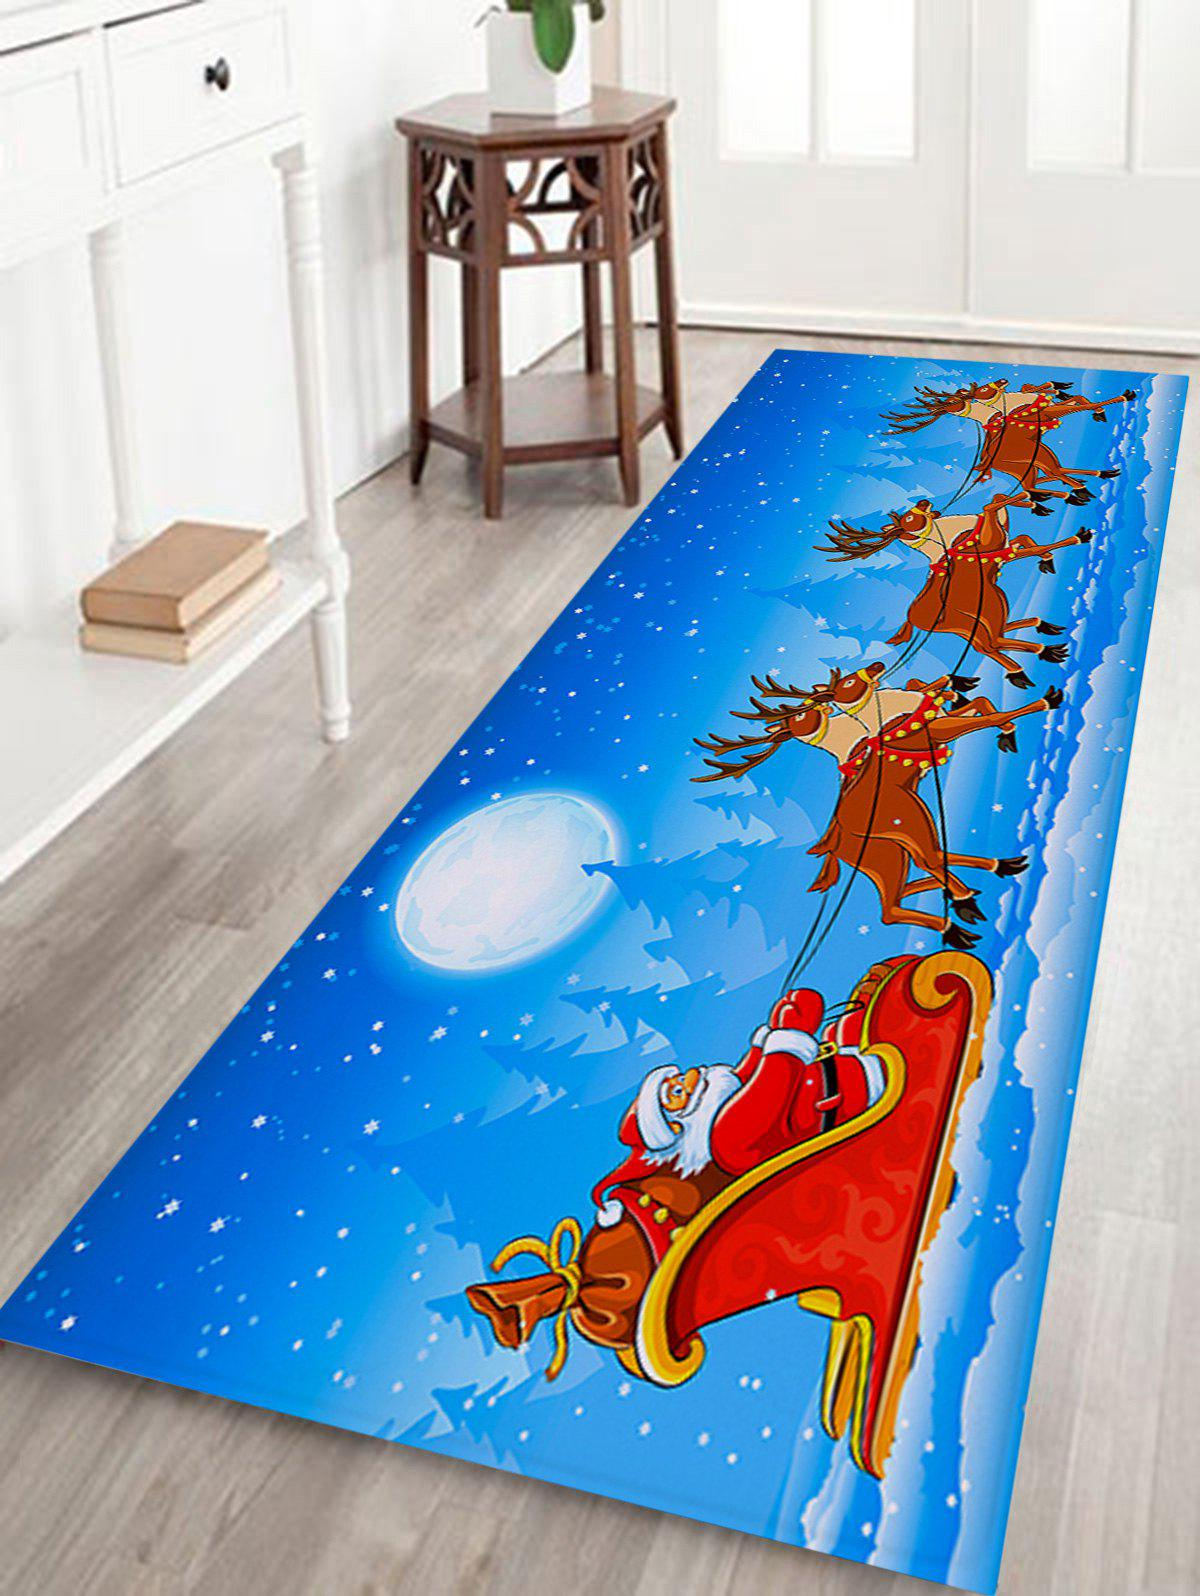 Christmas Sled Pattern Coral Fleece Skidproof Bath RugHOME<br><br>Size: W24 INCH * L71 INCH; Color: SKY BLUE; Products Type: Bath rugs; Materials: Coral FLeece; Pattern: Elk,Moon,Santa Claus; Style: Festival; Shape: Rectangular; Package Contents: 1 x Rug;